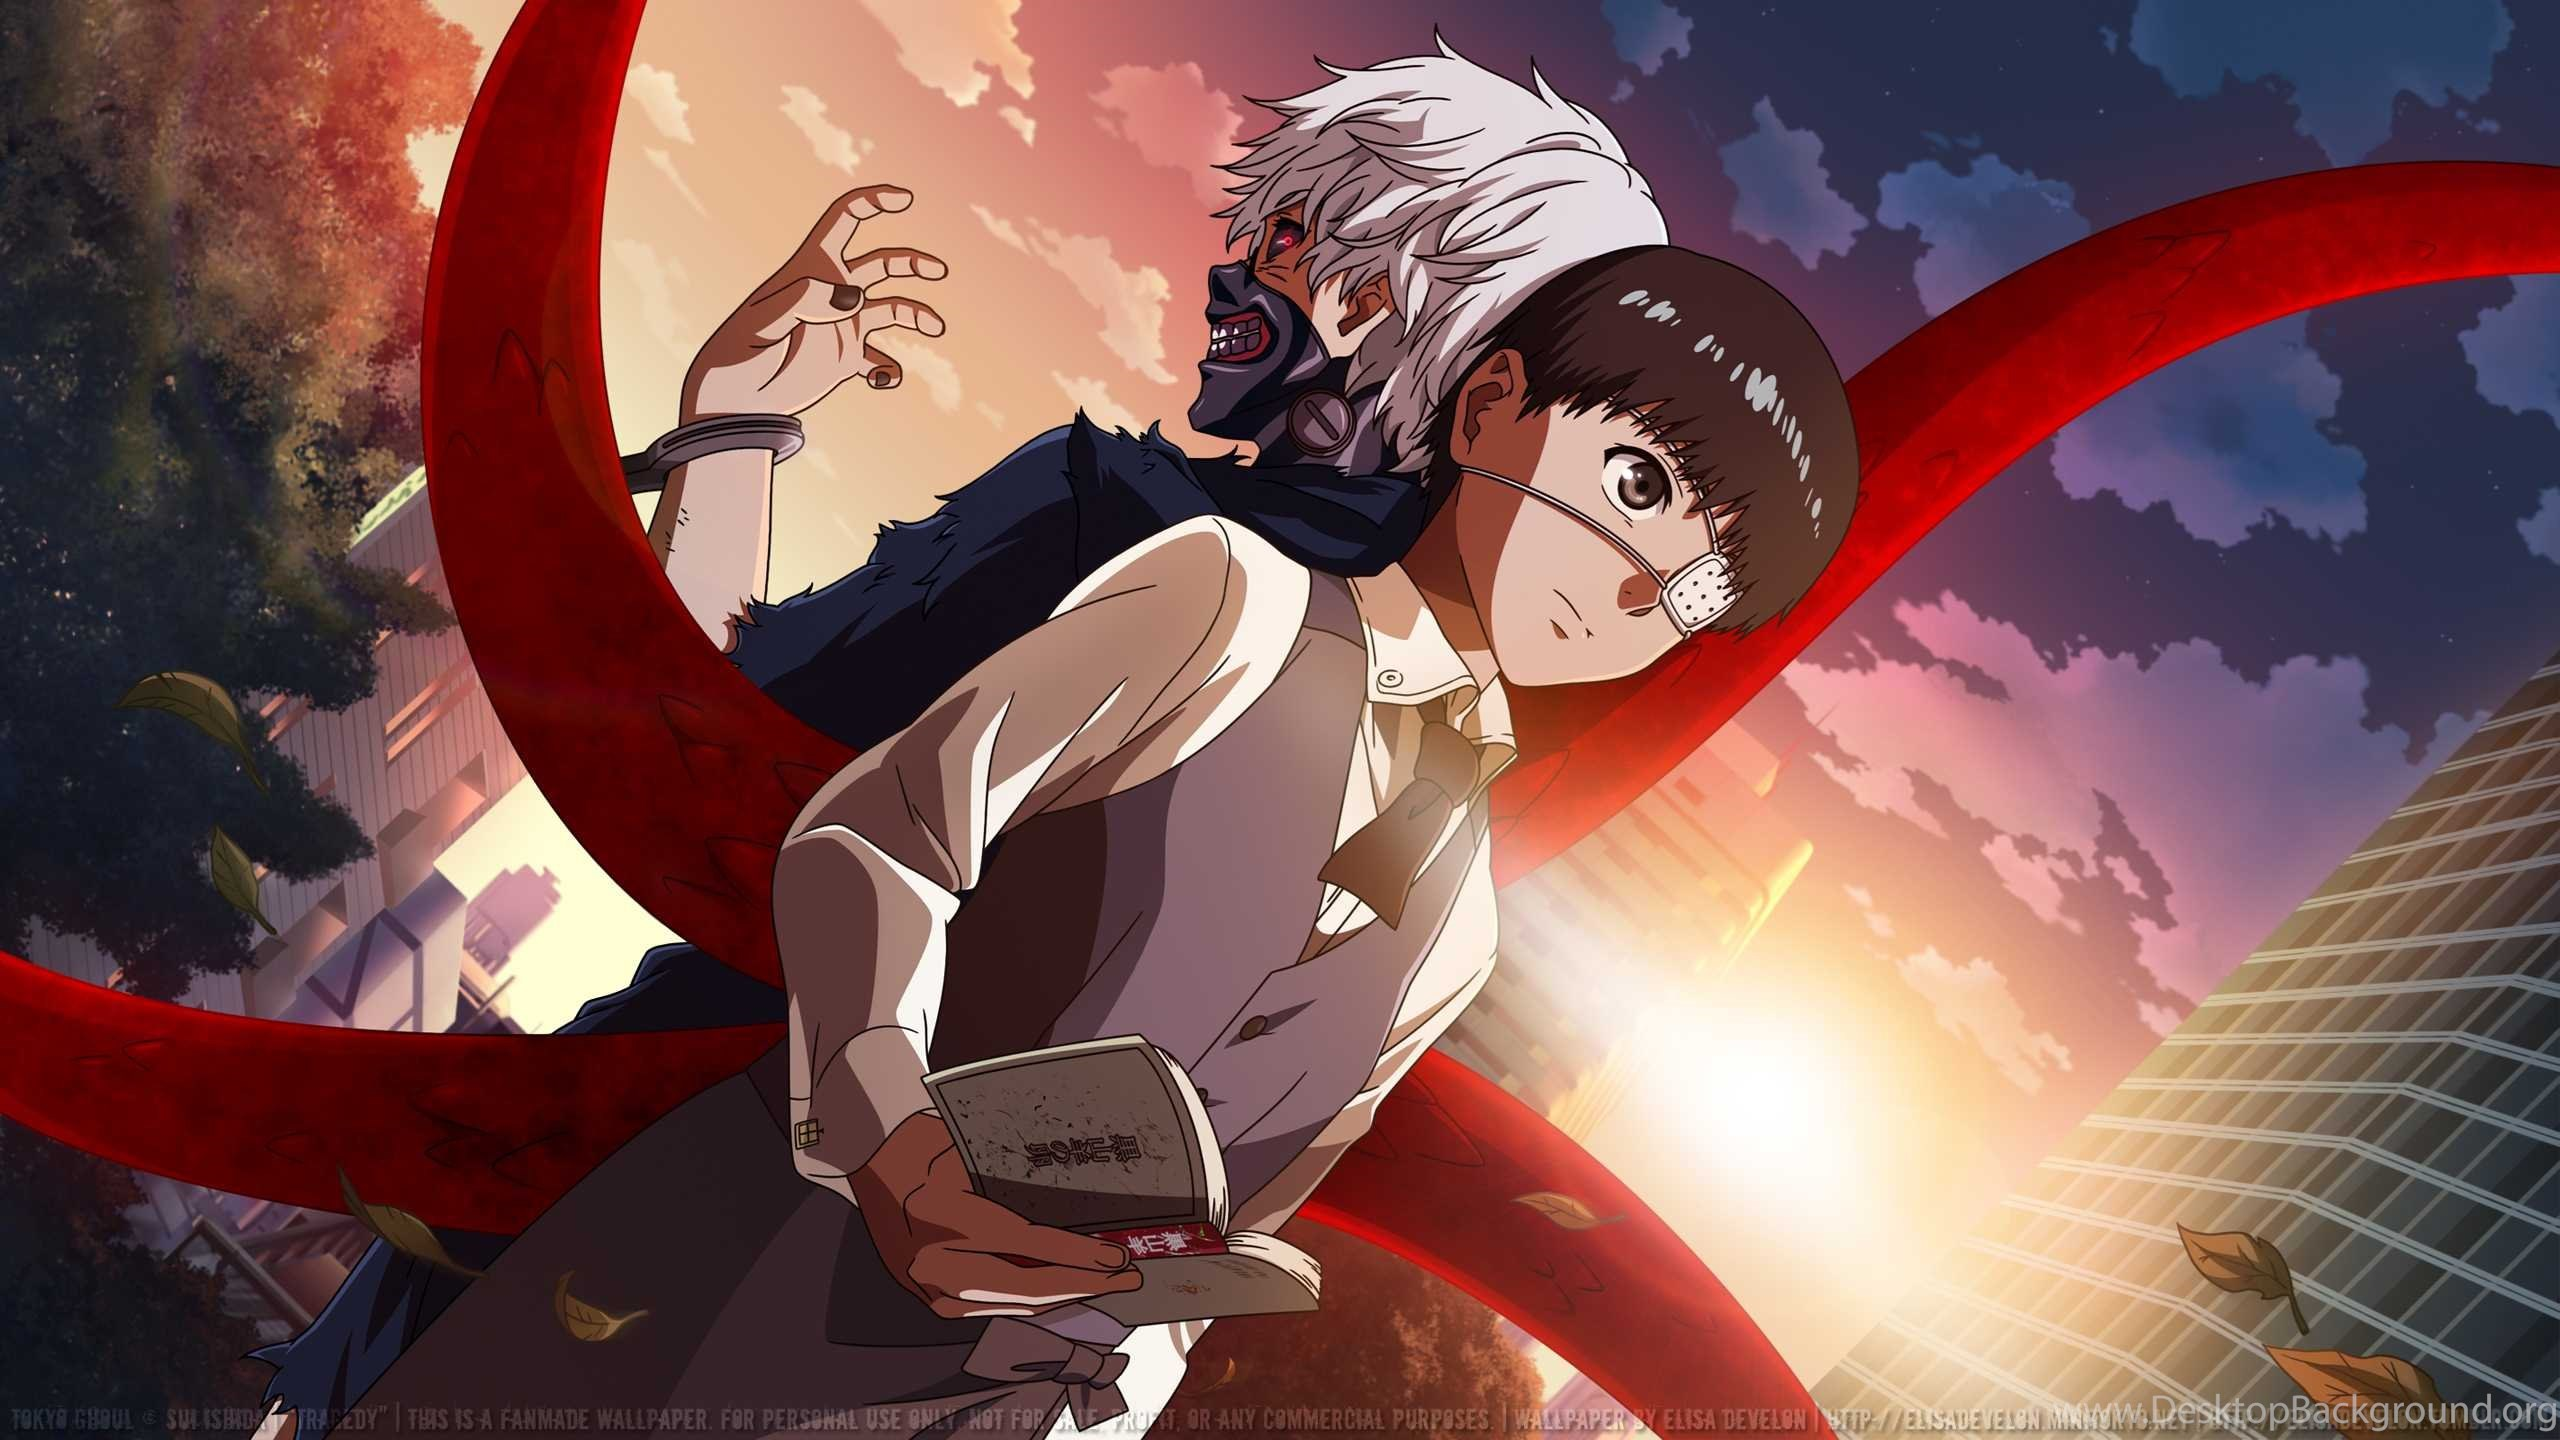 Tokyo Ghoul Wallpapers Hd Collection Of Tokyo Ghoul Anime Desktop